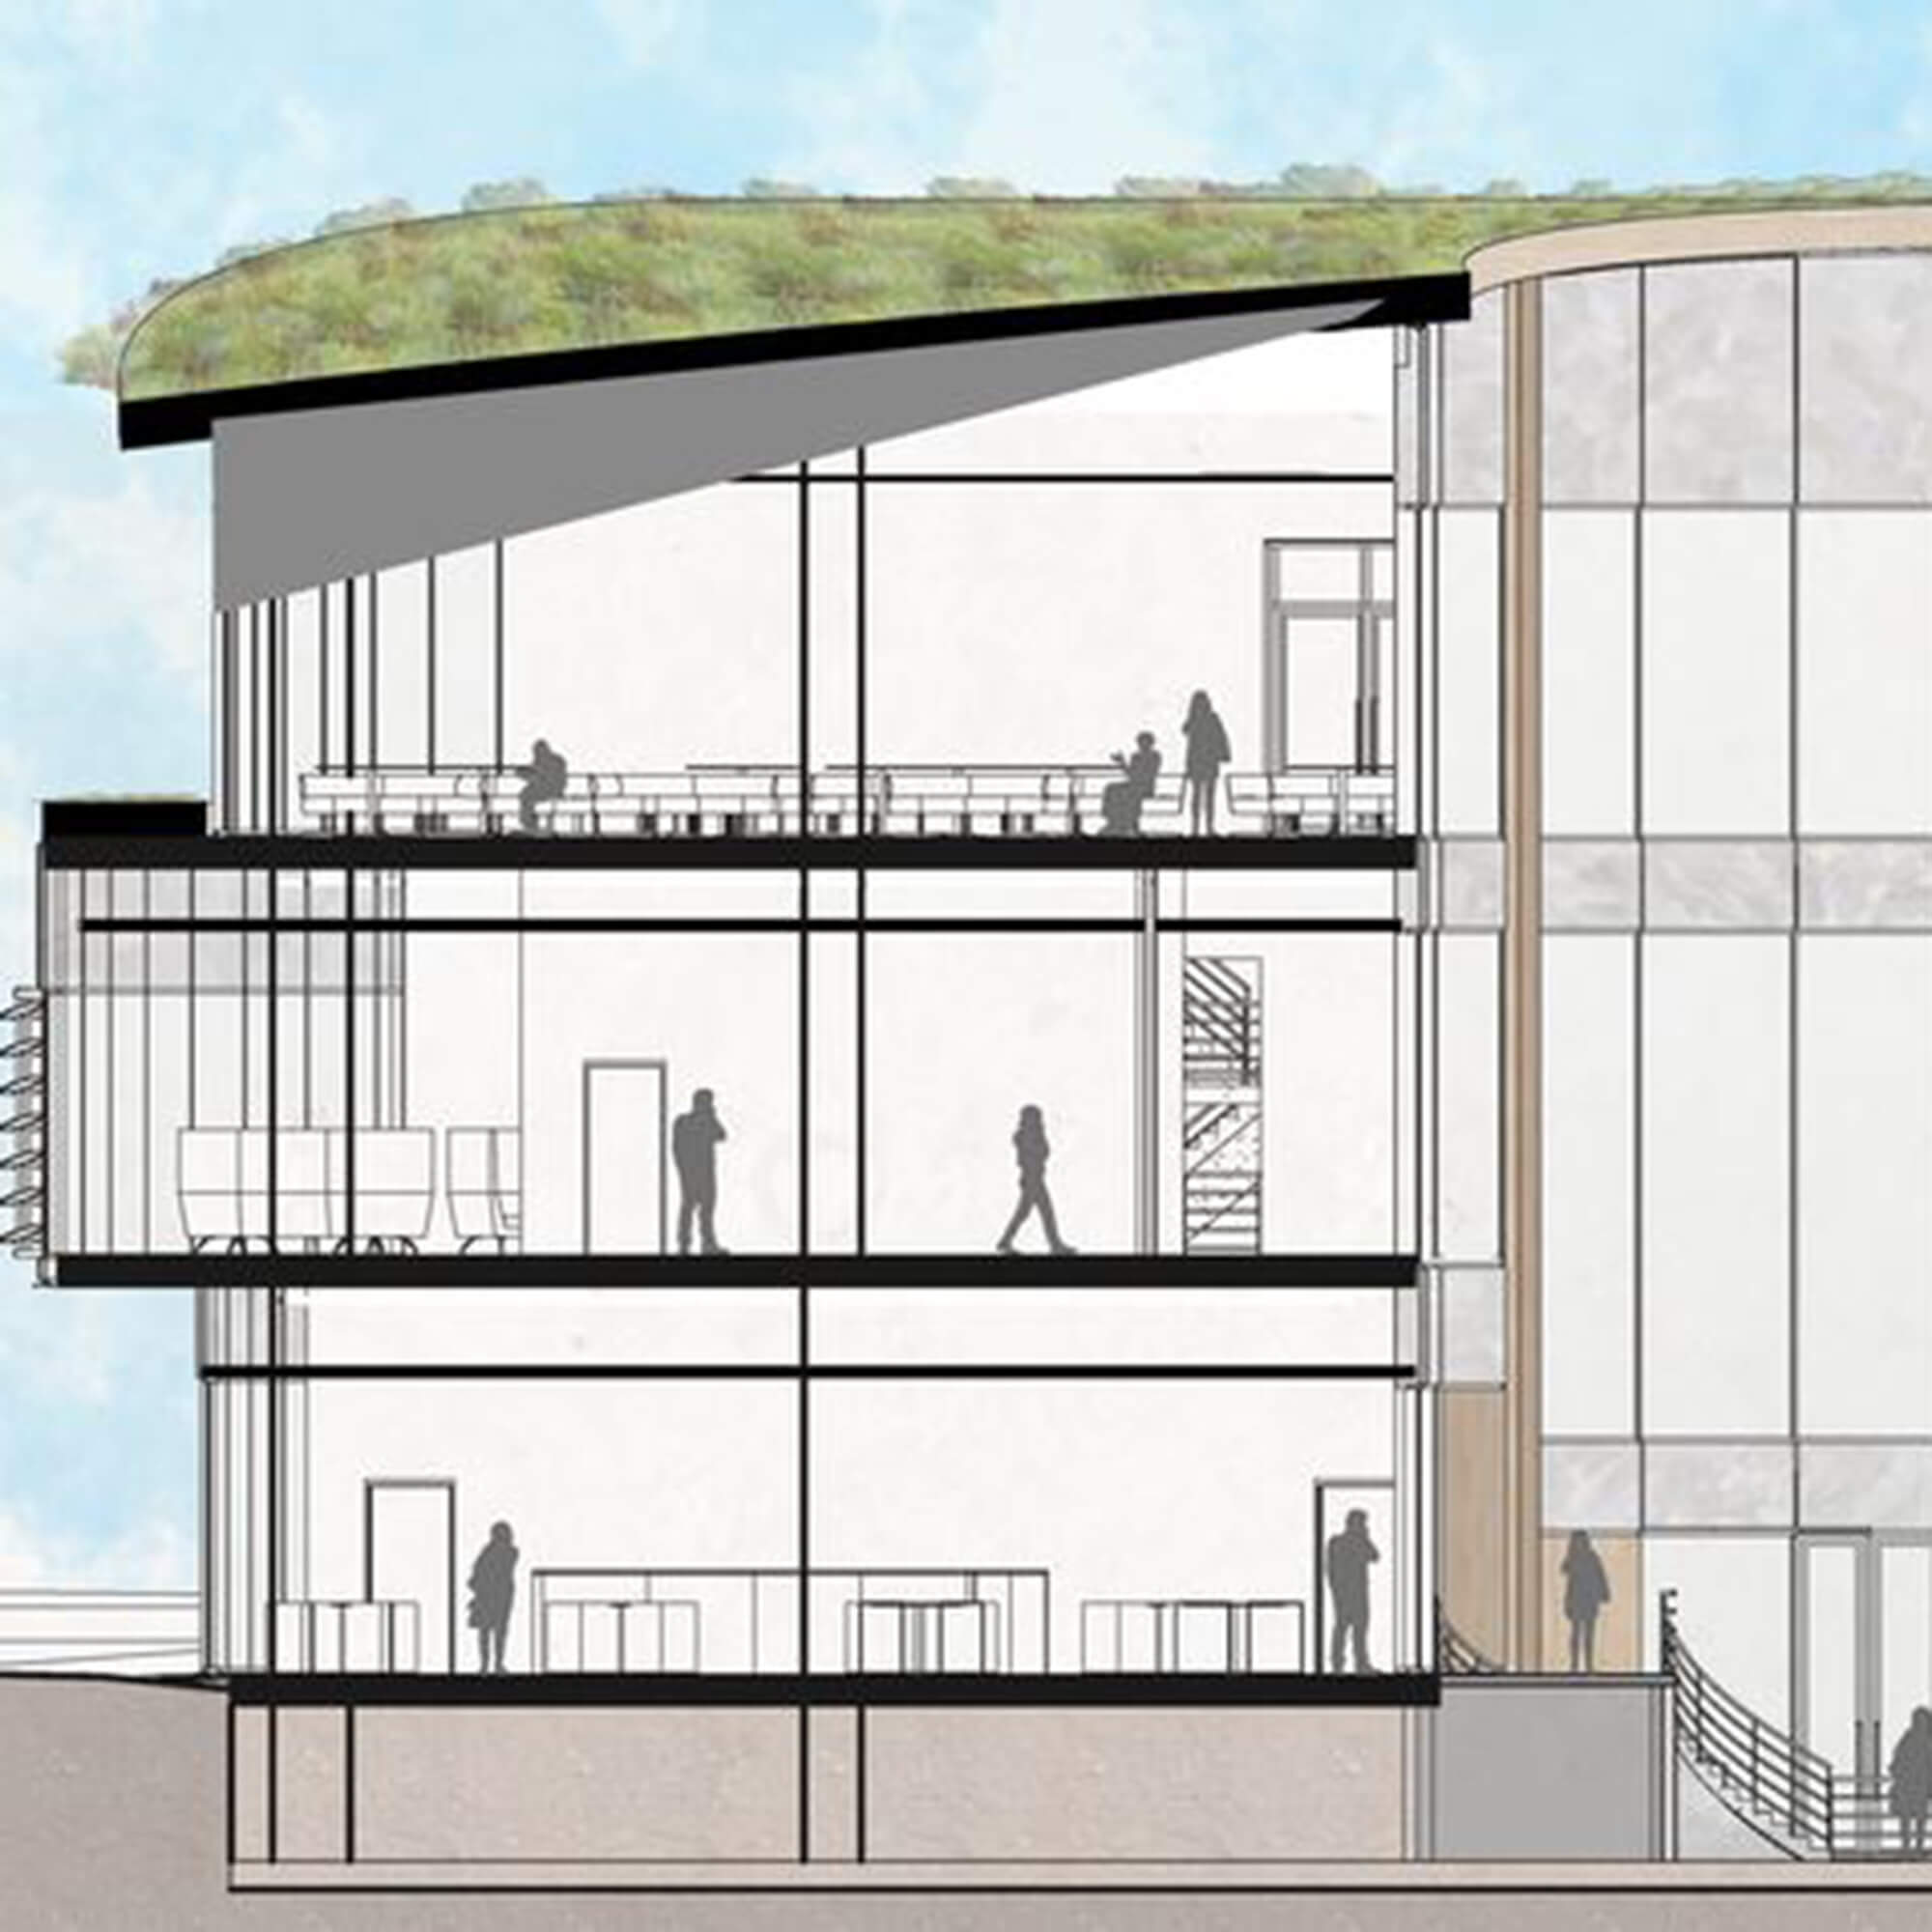 A drawing of 3 storey building make of glass with a grass roof